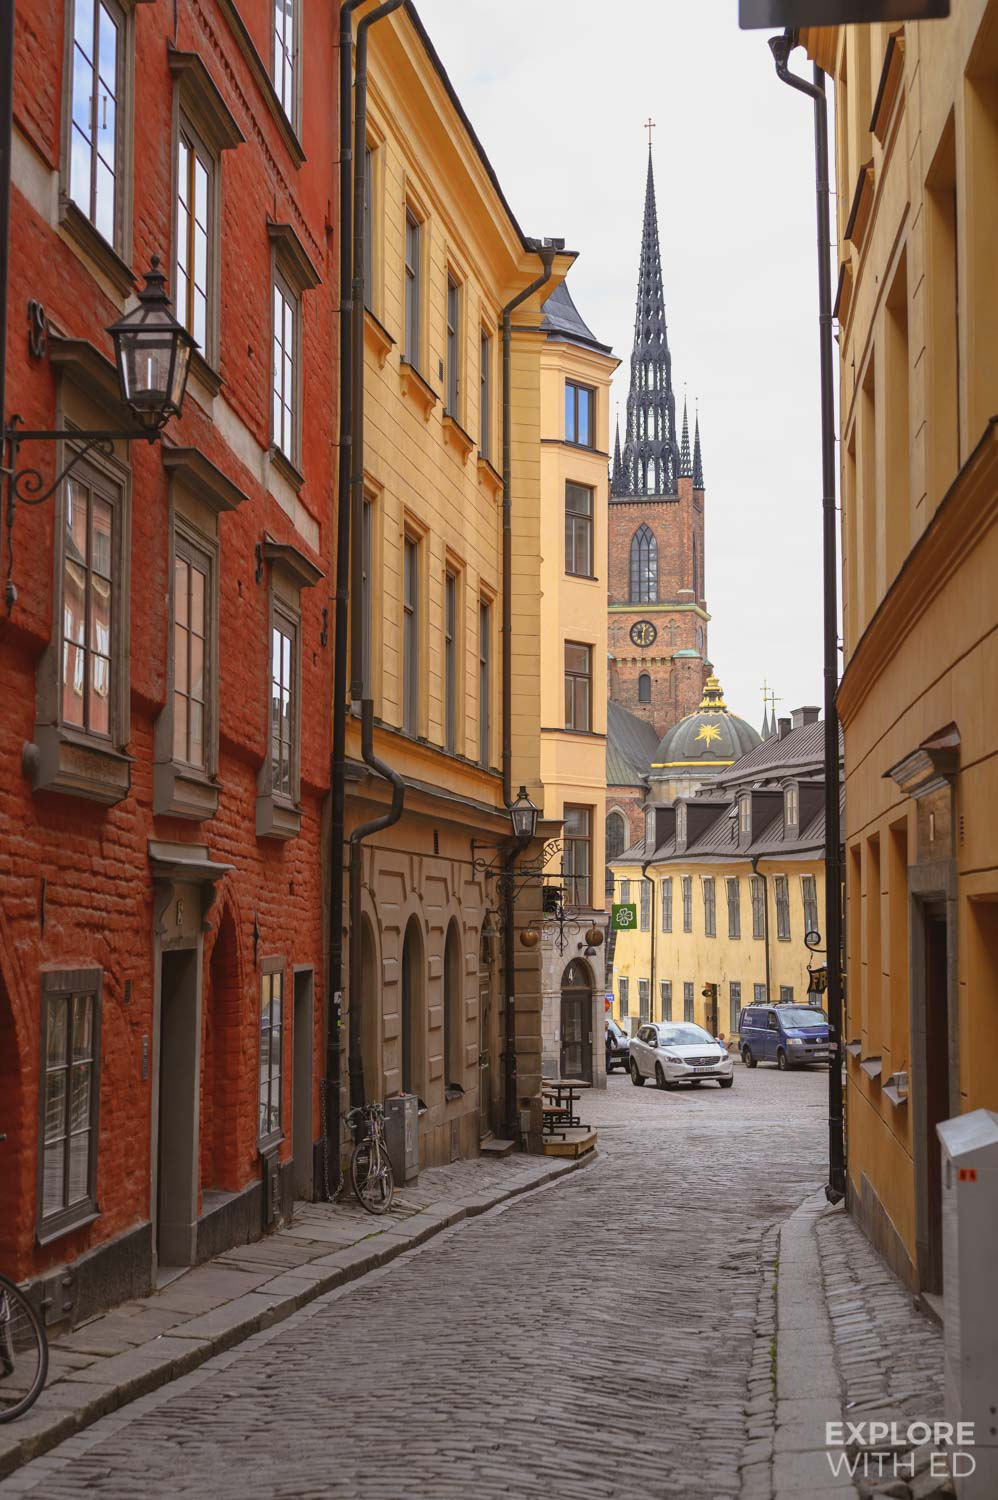 The colourful side streets in Stockholm's Old Town